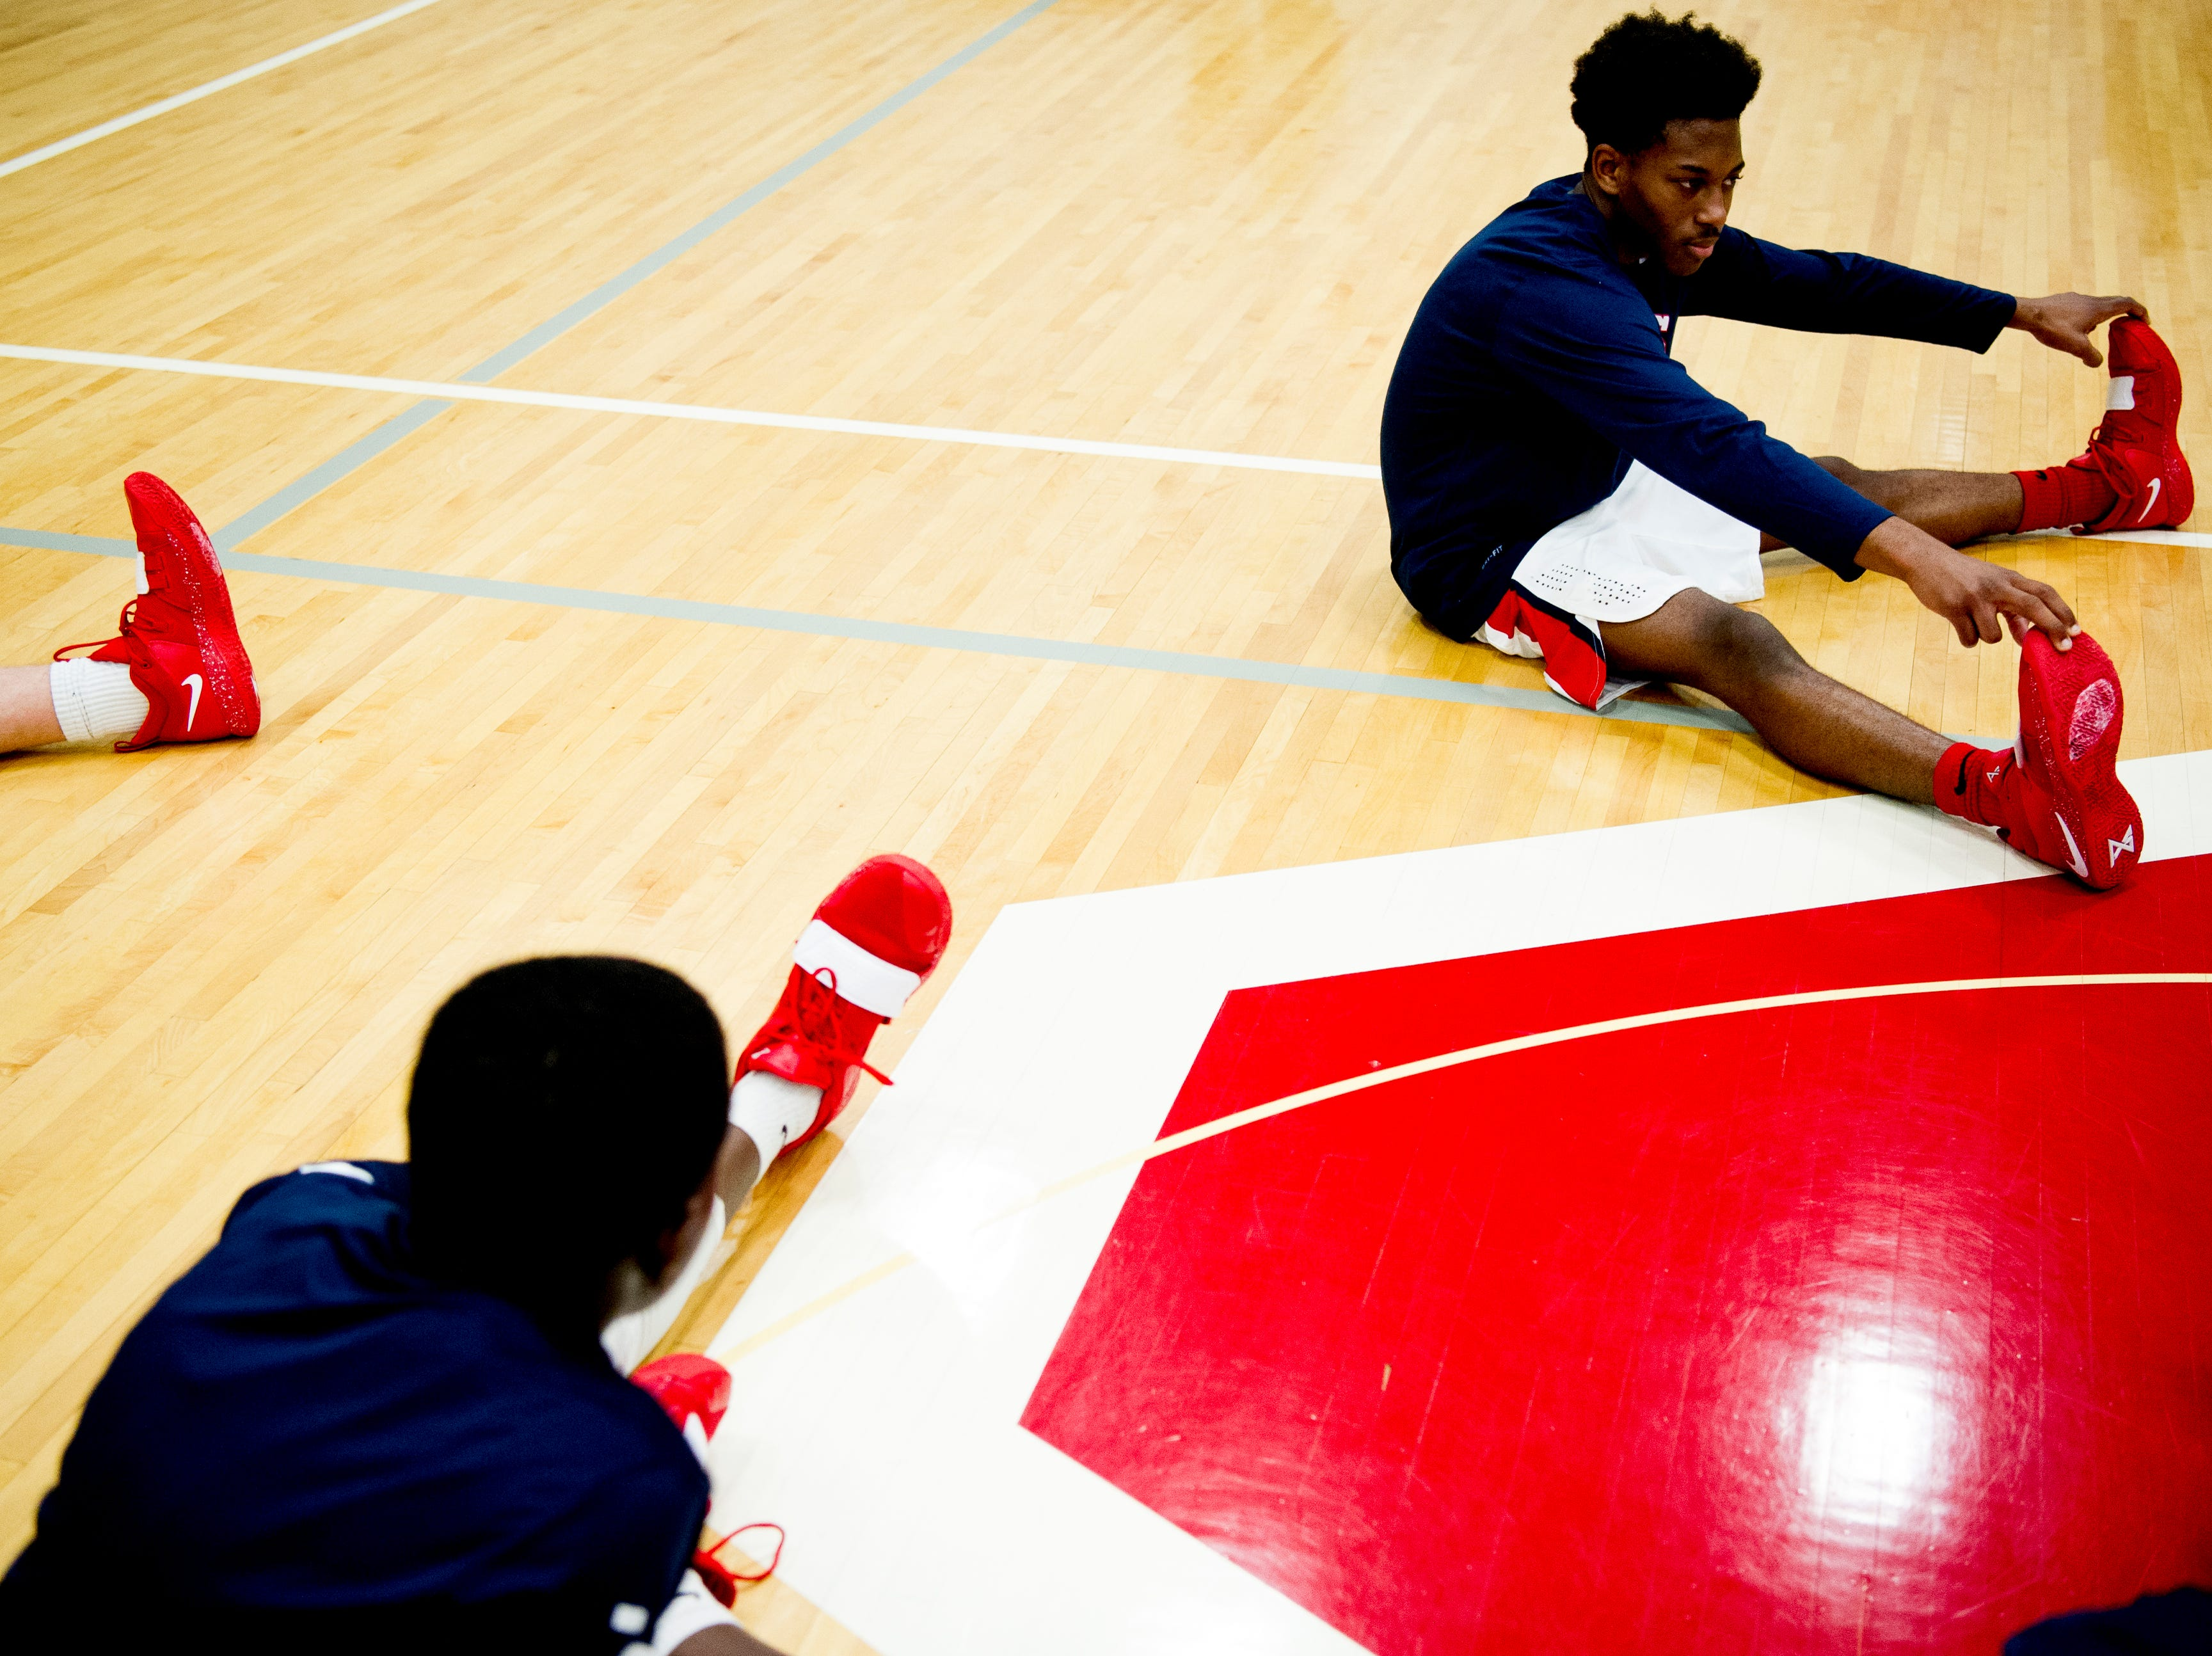 West players stretch during a game between West and Webb at West High School in Knoxville, Tennessee on Friday, January 4, 2019.